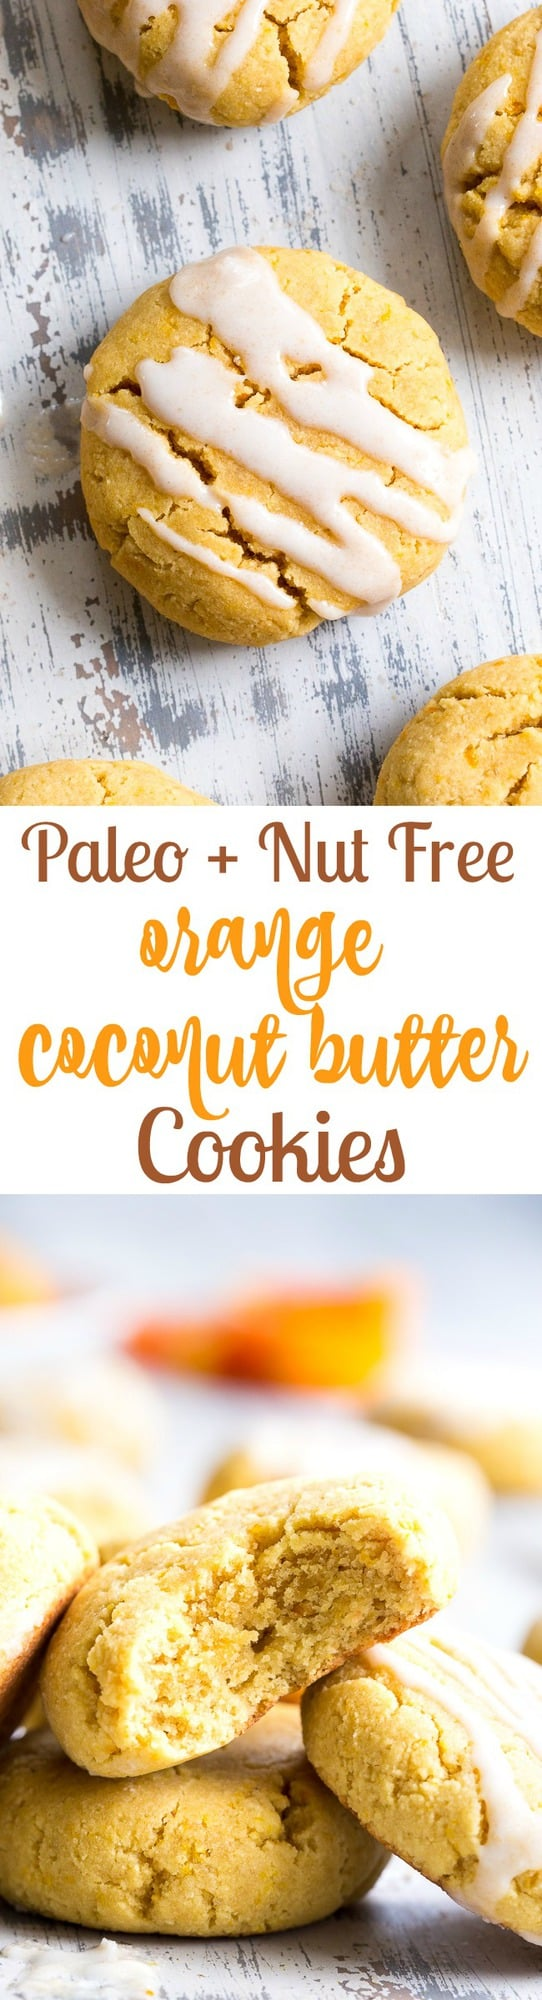 These paleo orange coconut butter cookies have a soft shortbread-like texture and tons of sweet citrus flavor!  They're made with coconut butter and coconut flour, so they're grain free, gluten free, dairy free and nut free. These addicting cookies are kid approved and delicious with a coconut maple icing!